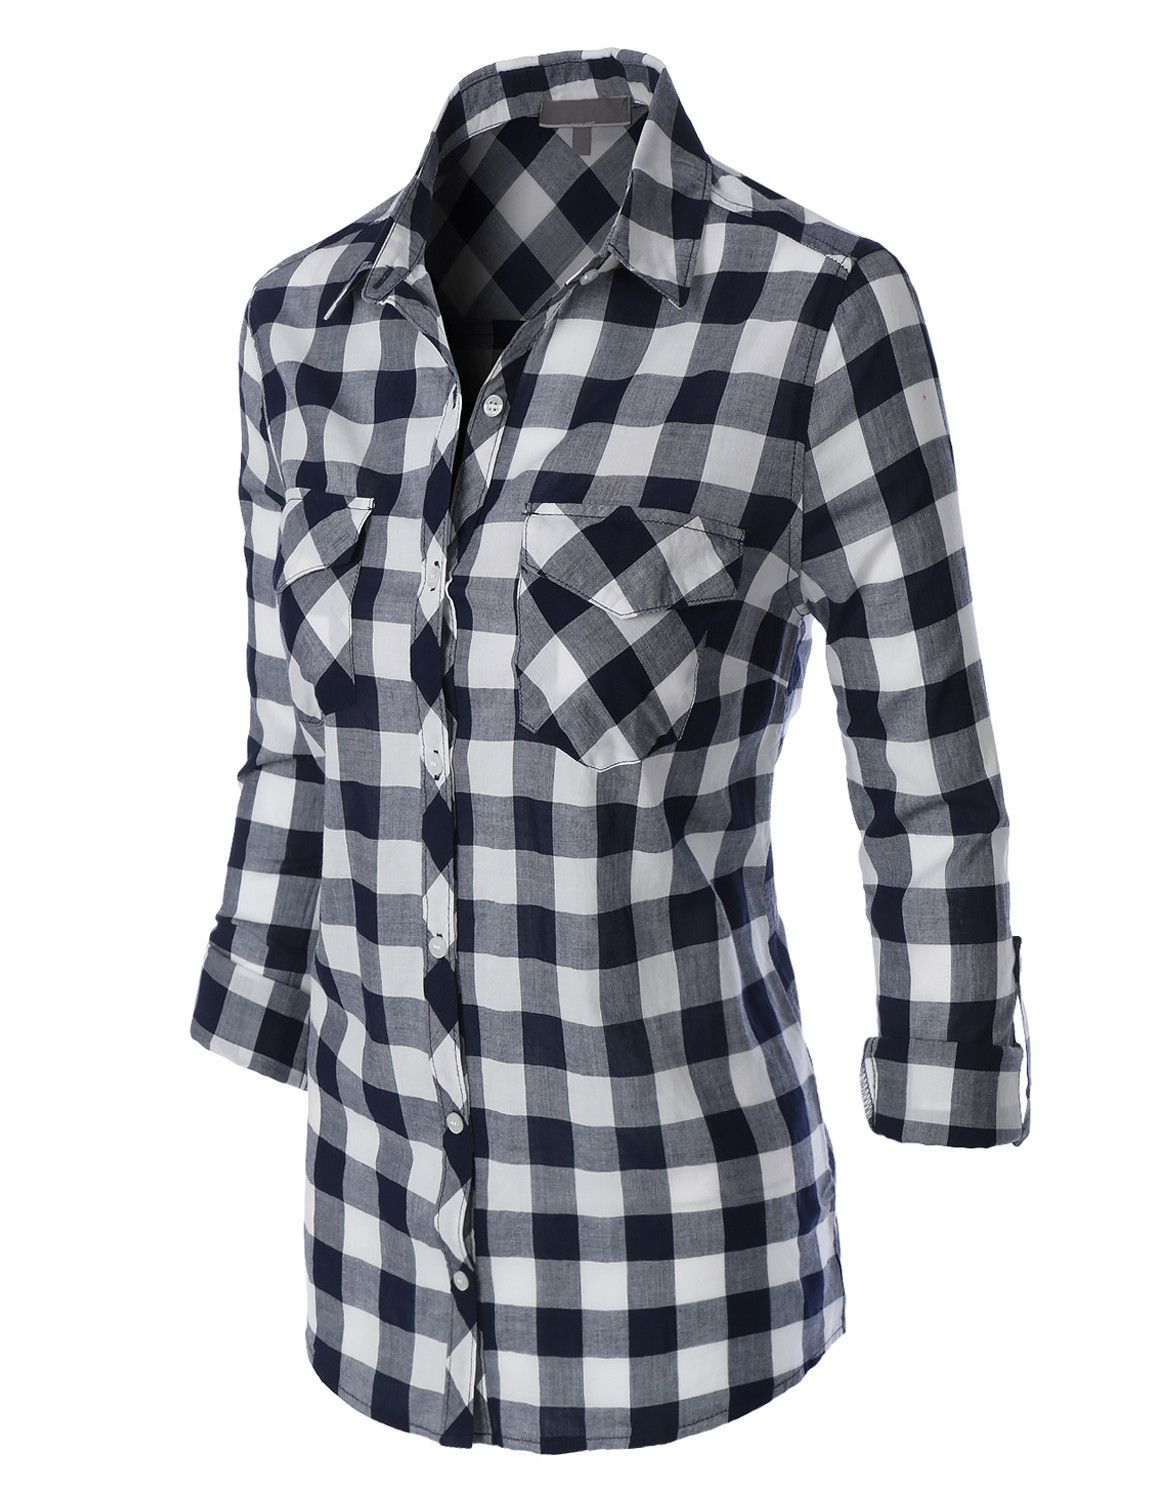 cba9fcbe LE3NO Womens Lightweight Plaid Button Down Shirt with Pockets ...